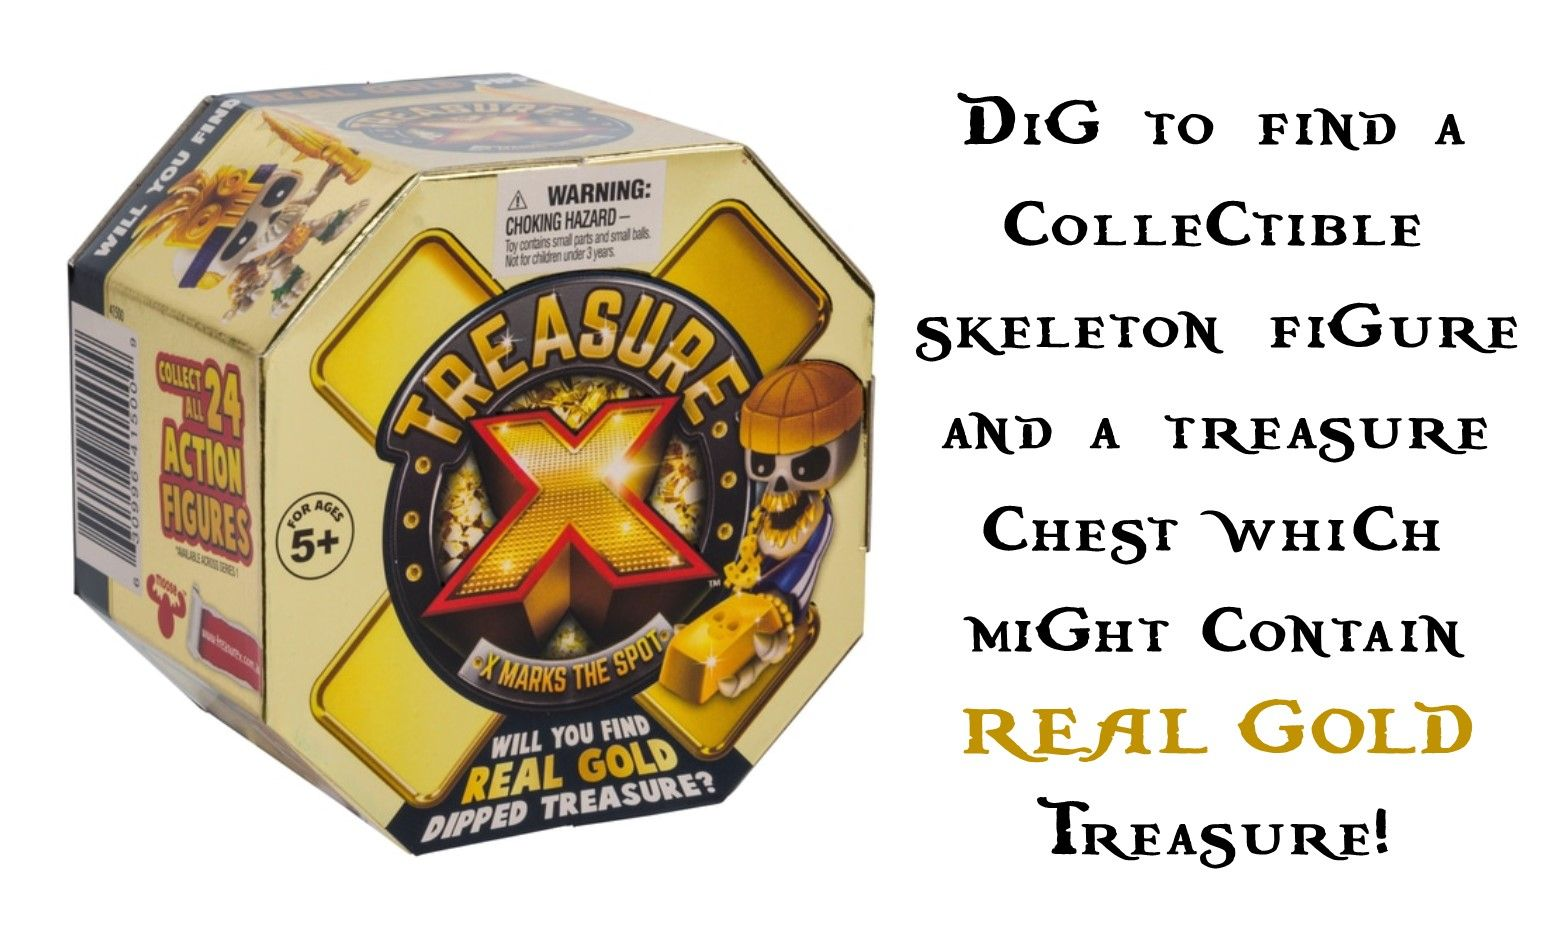 New Treasure X Toy is Predicated to be Next Big Must Have